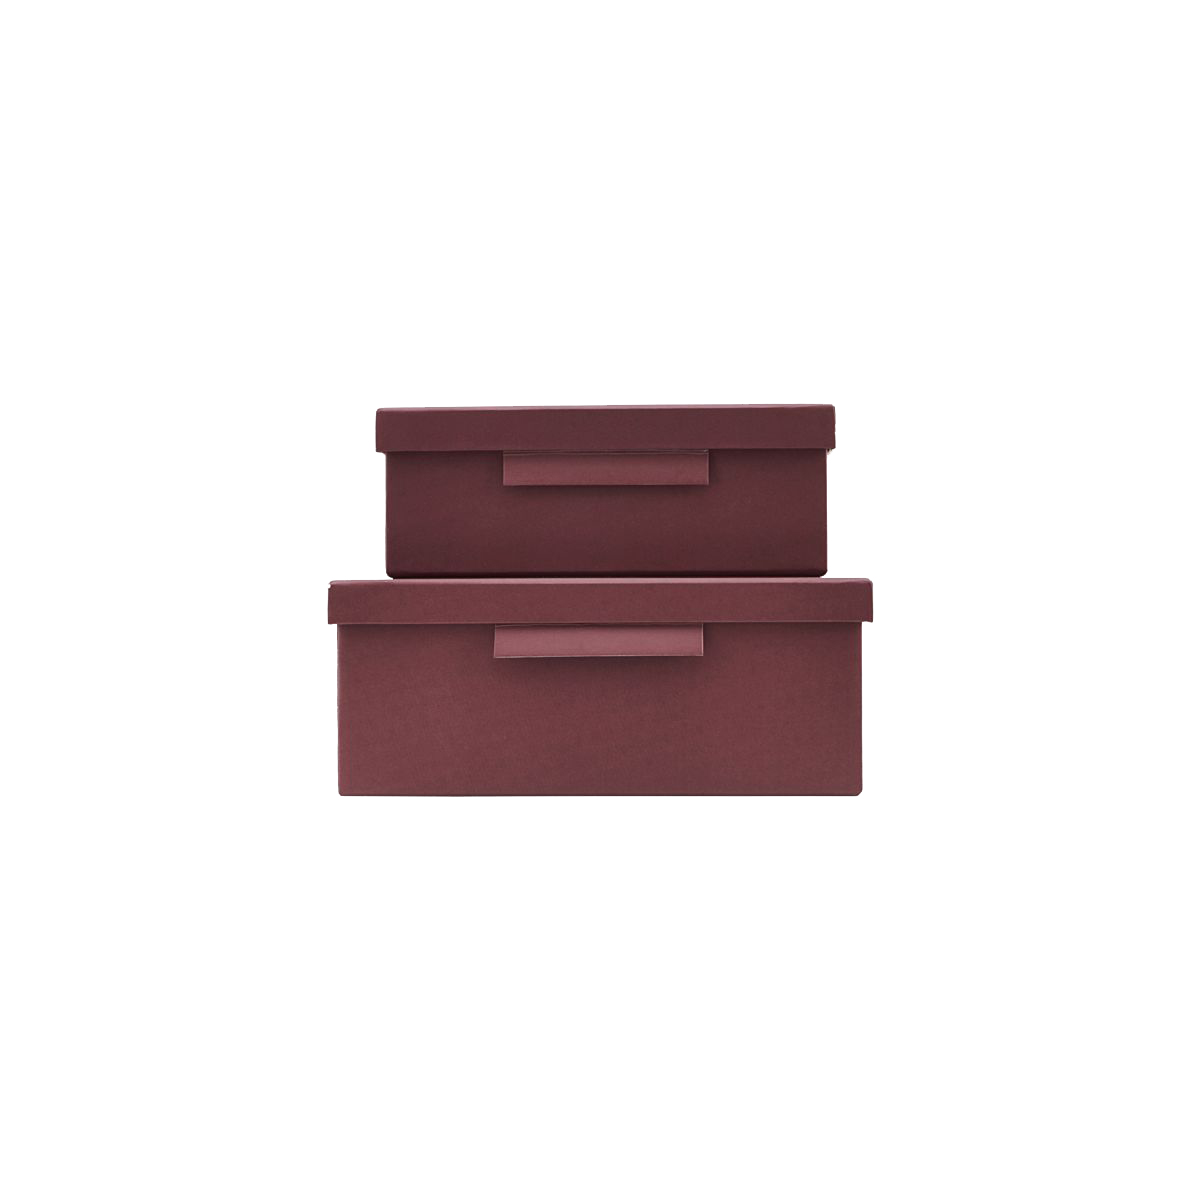 House Dcotor - File Box With Lid - Bourgogne (402740012/402740012)